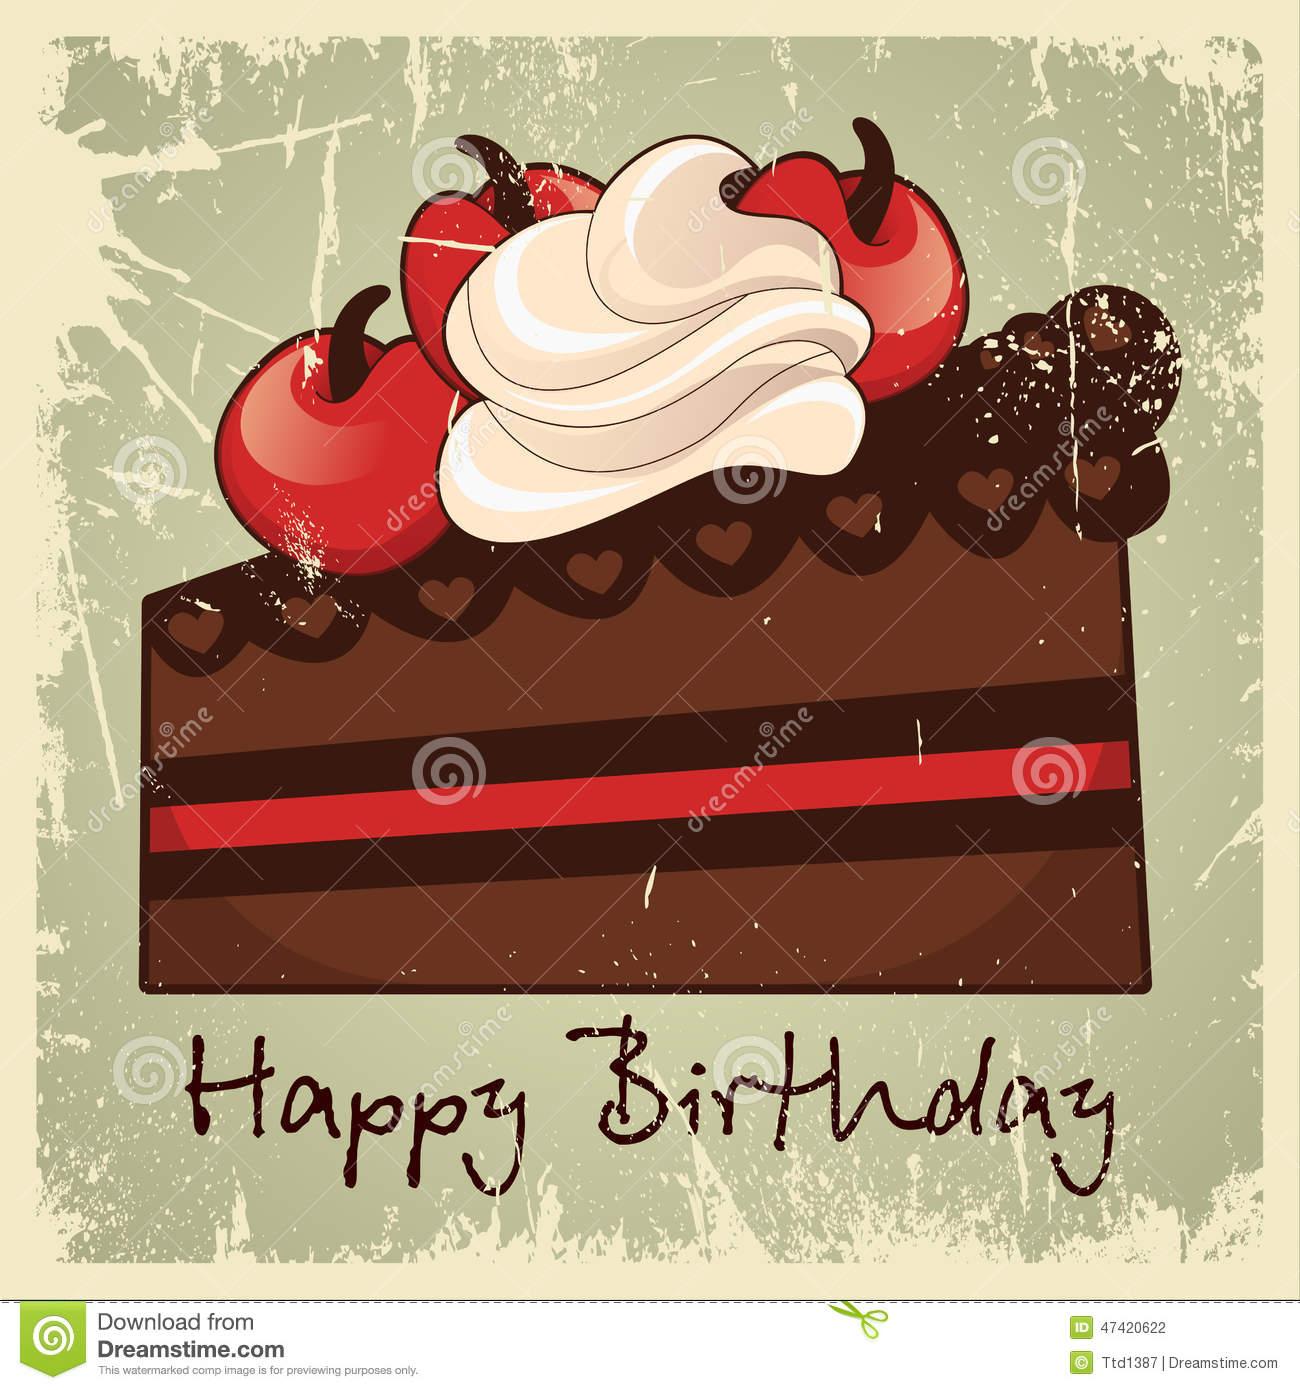 Cake Images Card : Cake Happy Birthday Vintage Stock Vector - Image: 47420622